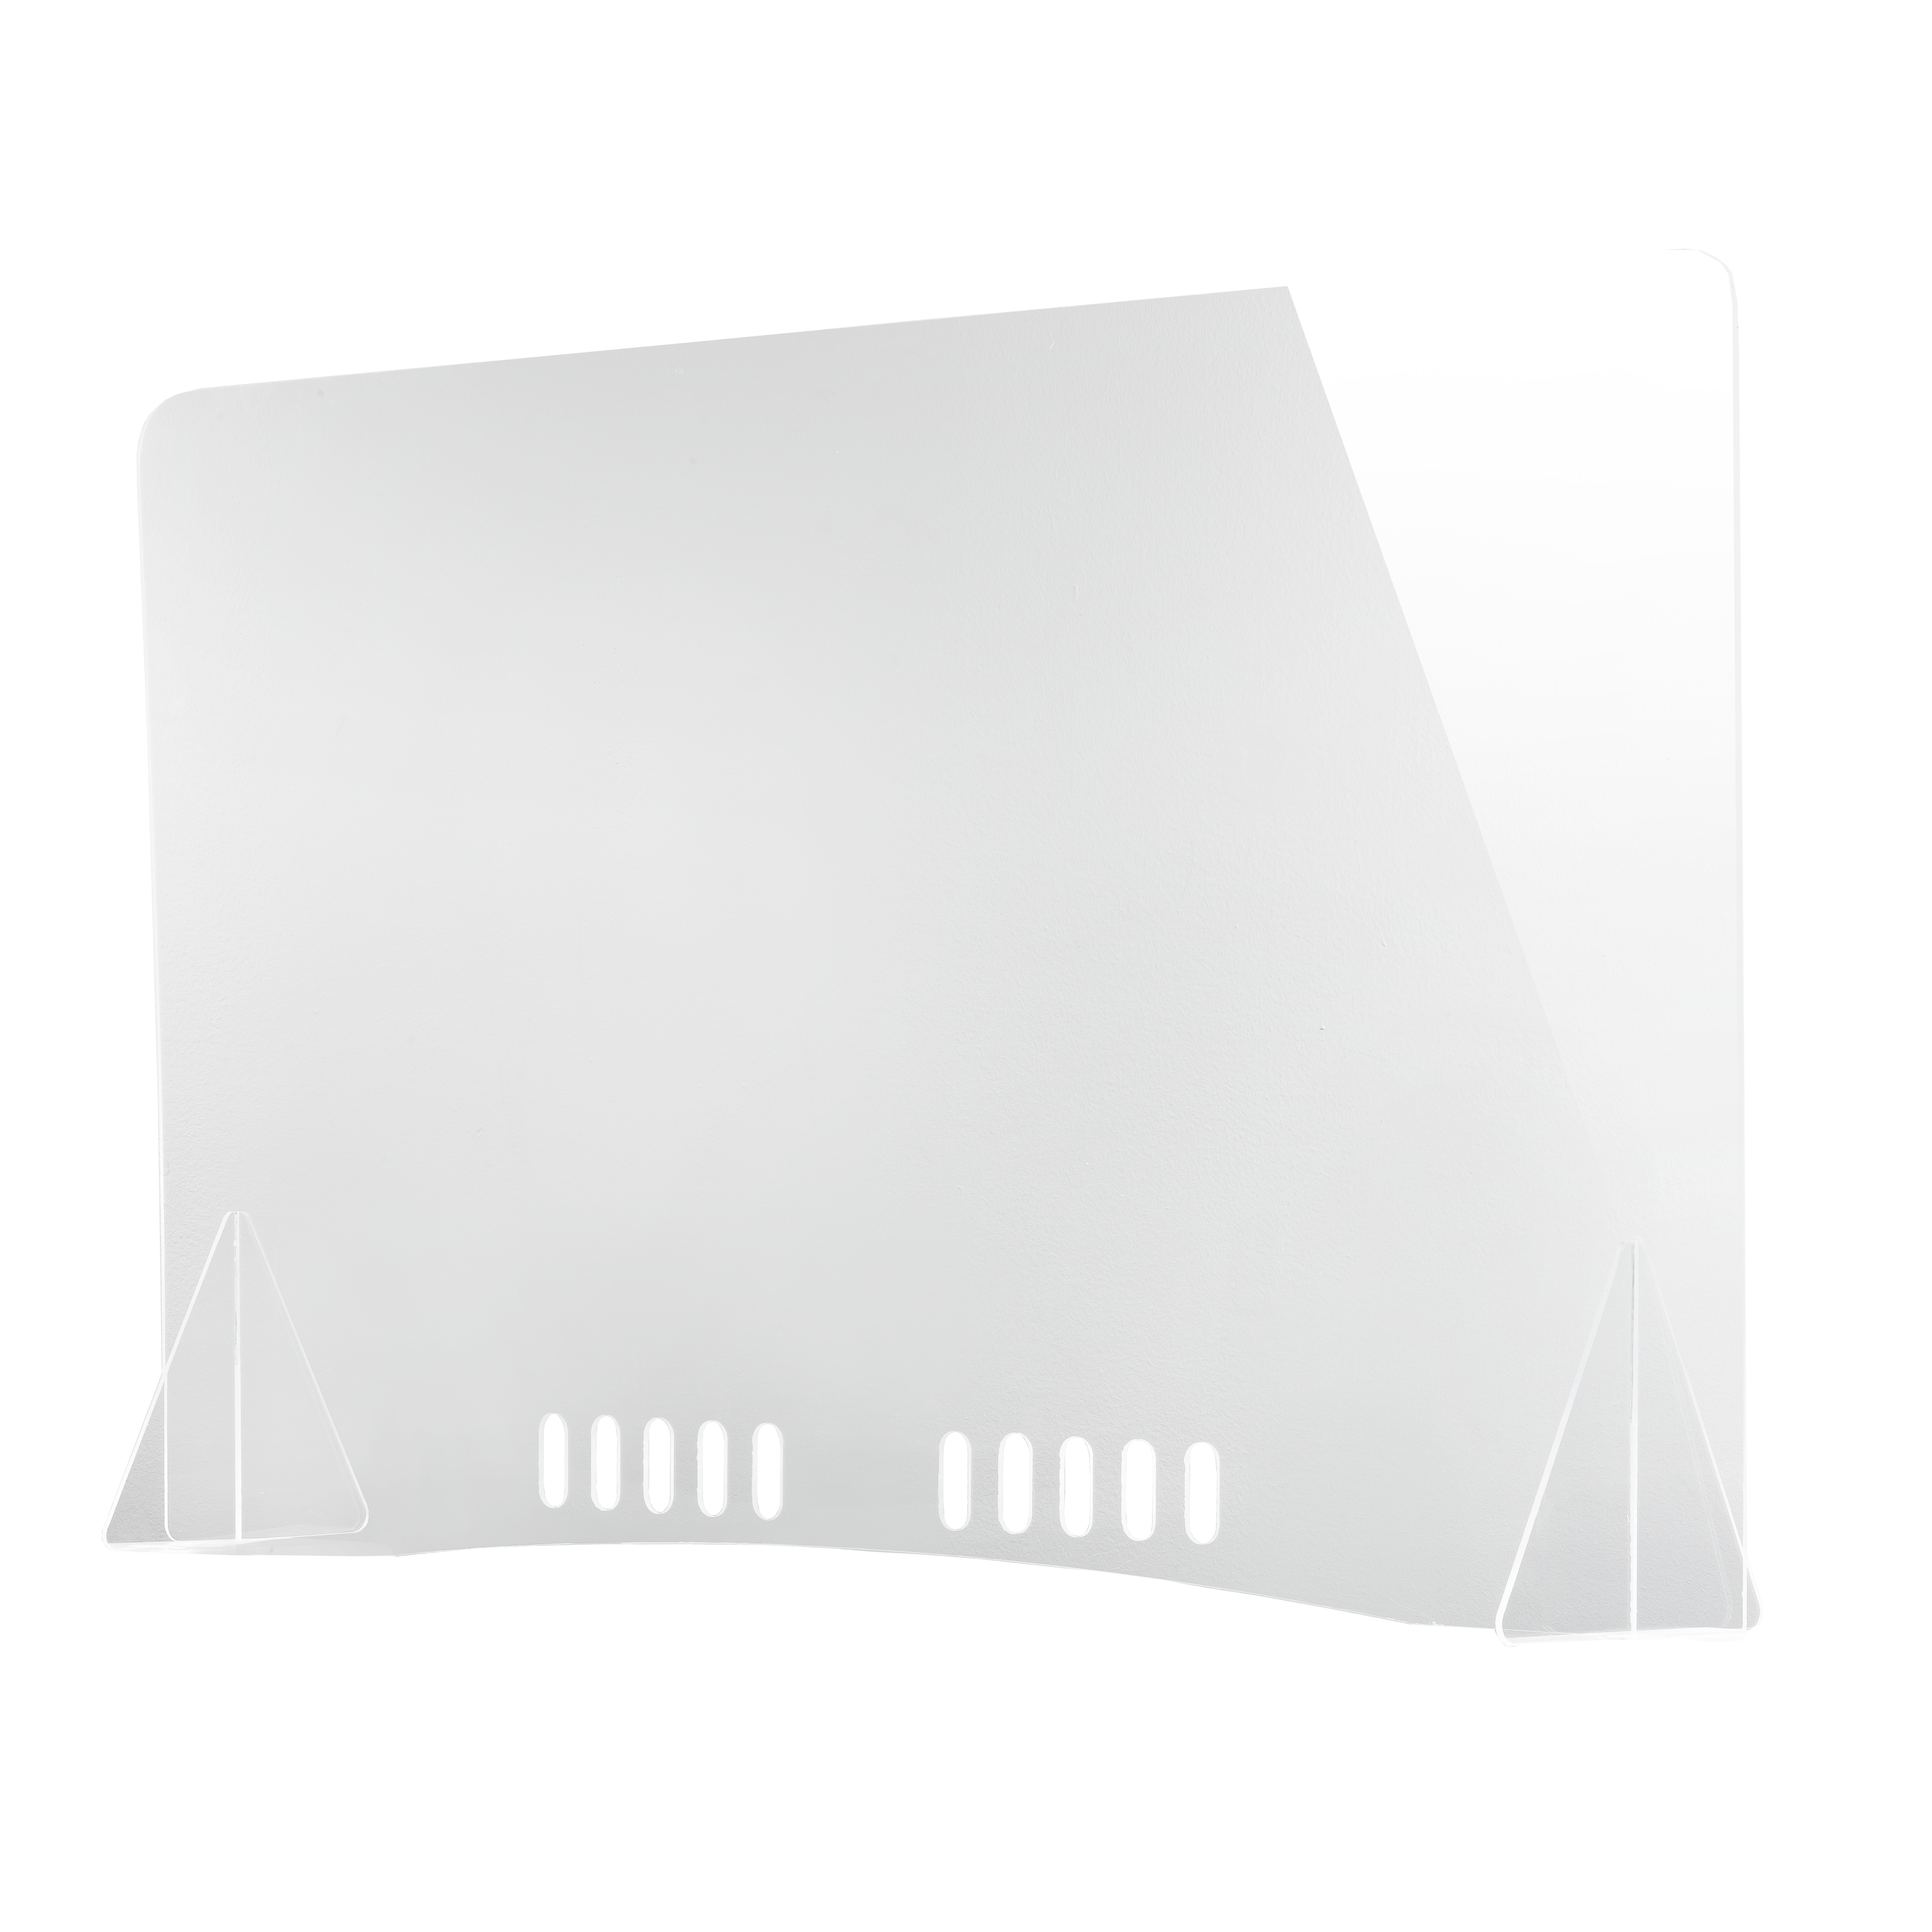 TableCraft Products CWACT2SHIELD coutnertop shields